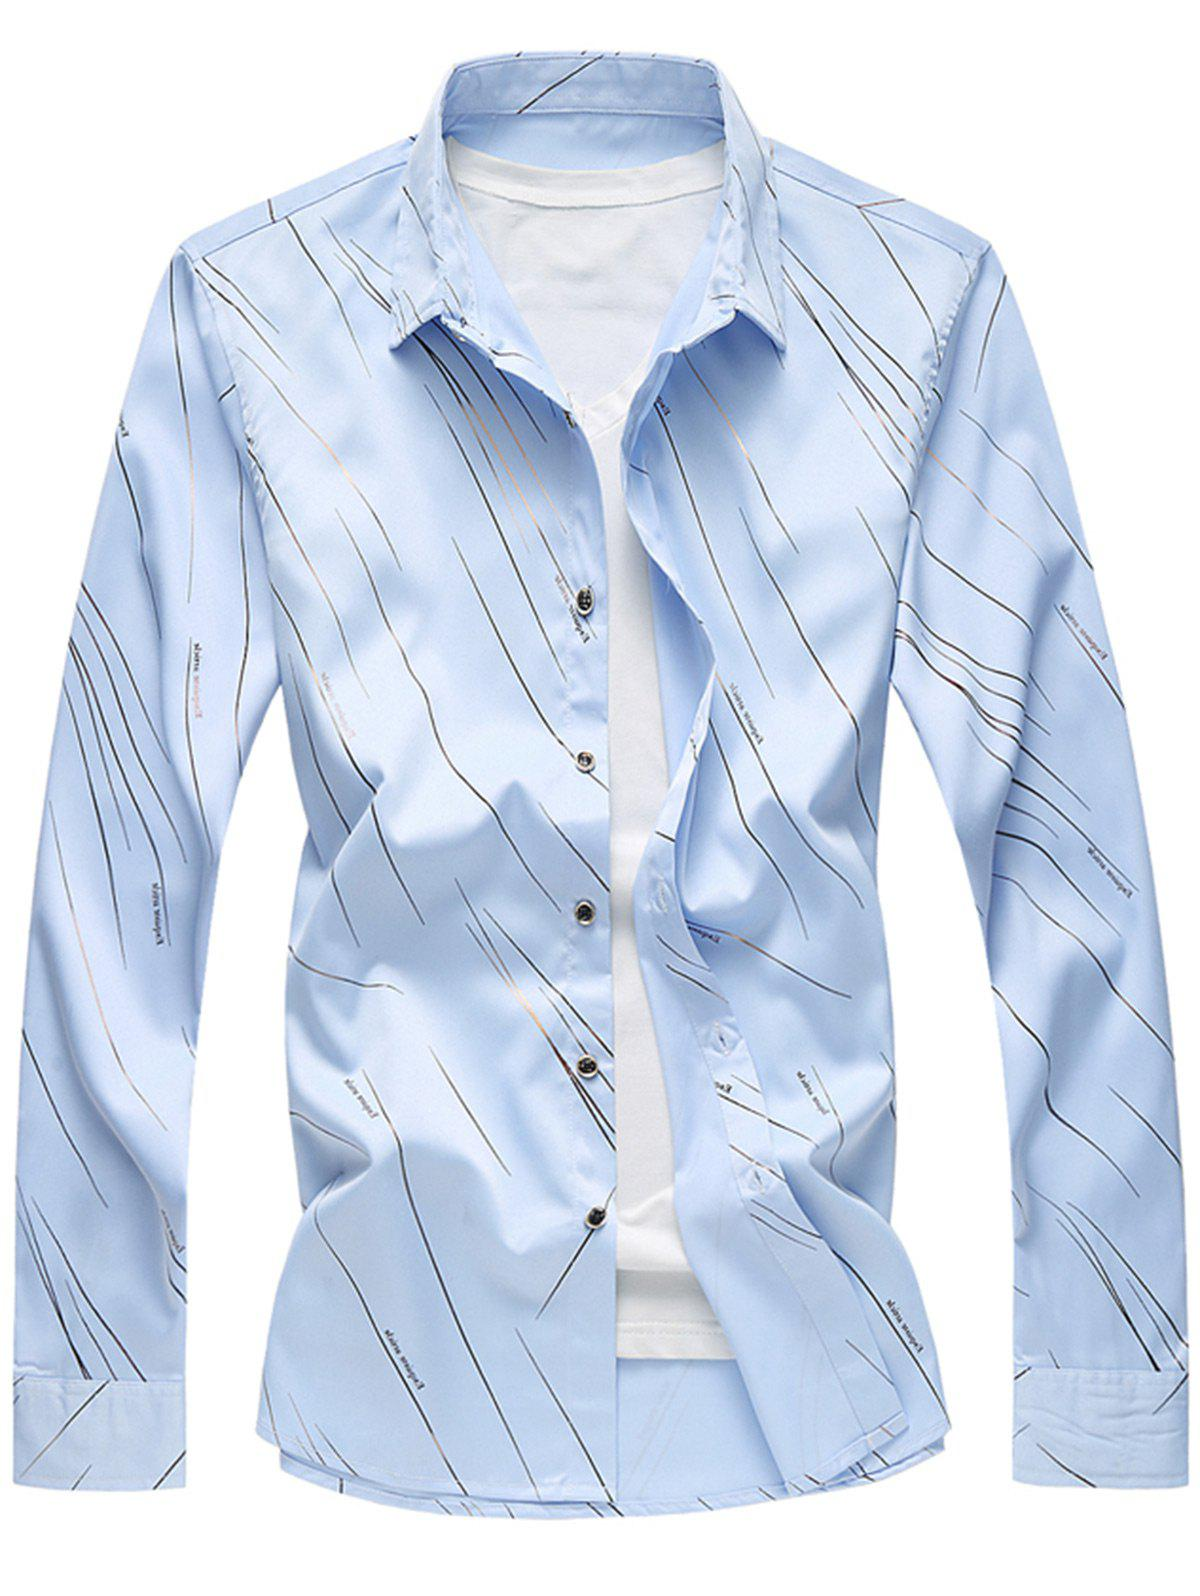 Long Sleeve Button Up Casual Shirt, Blue